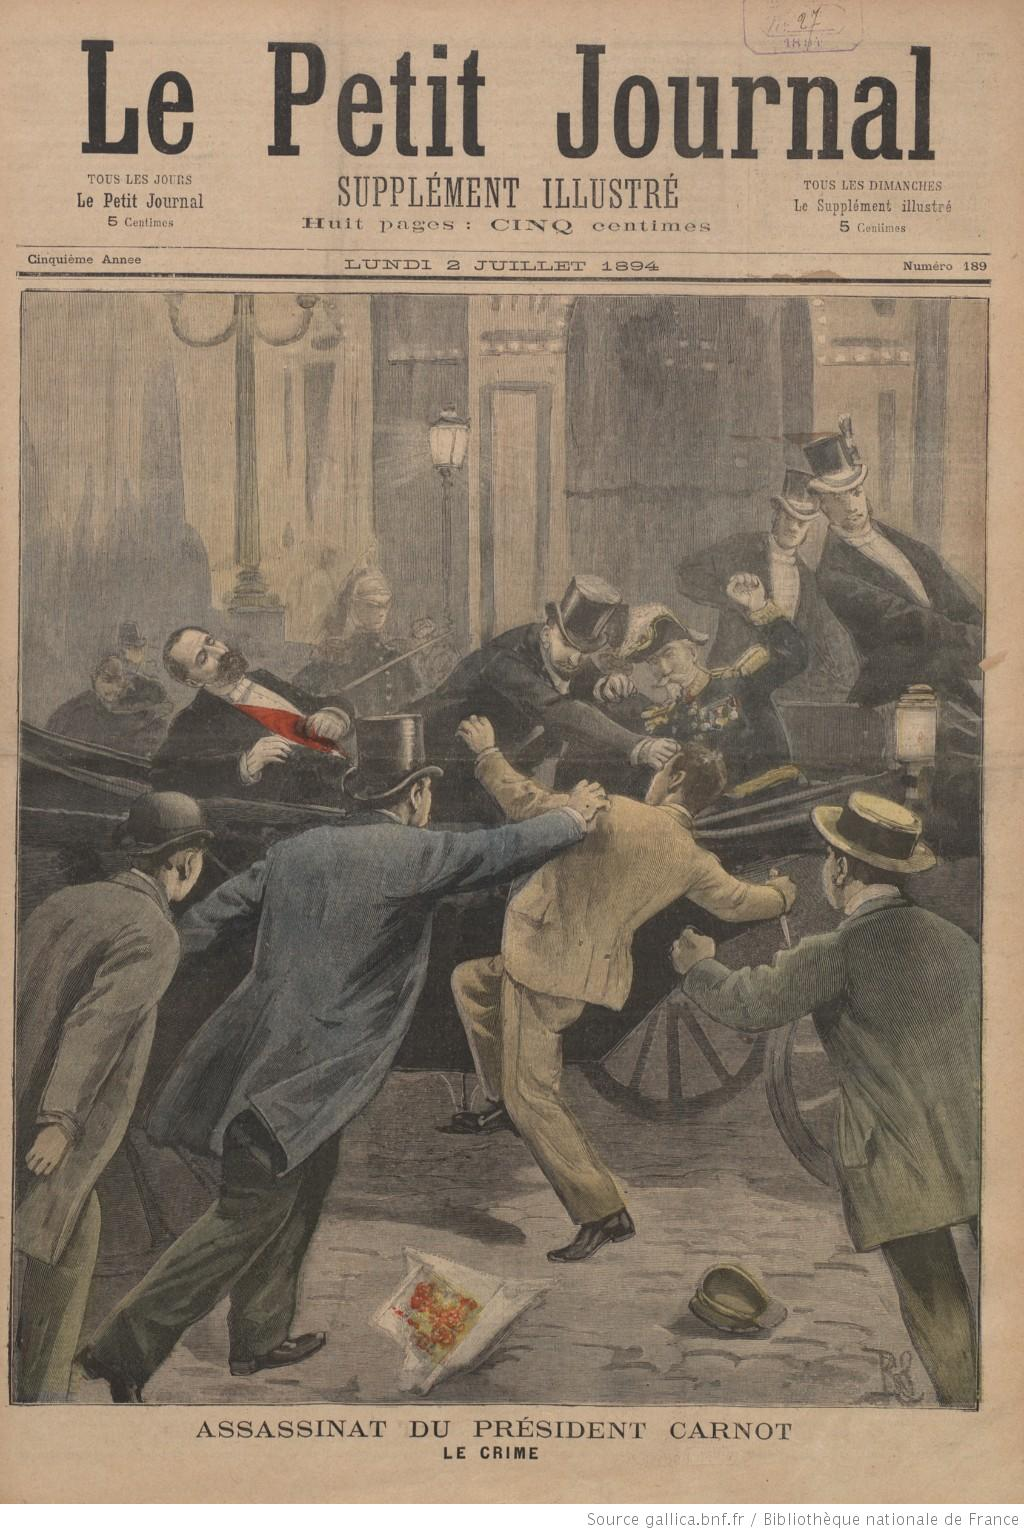 Petit_Journal_Carnot_assassination_1894.jpg